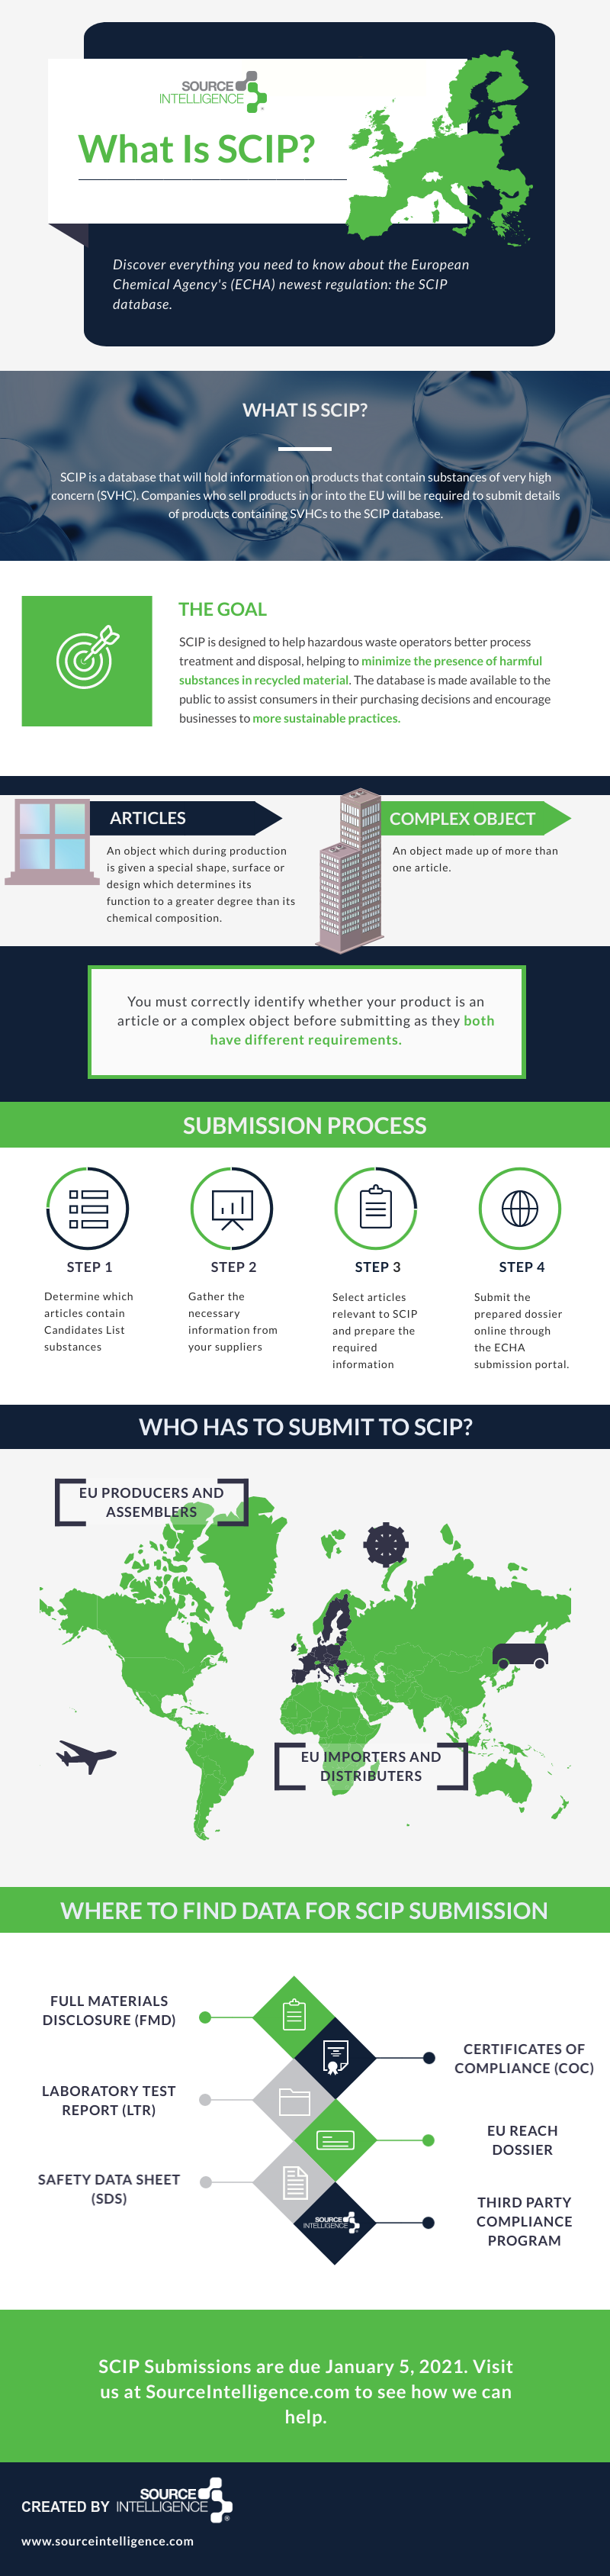 What is SCIP Database